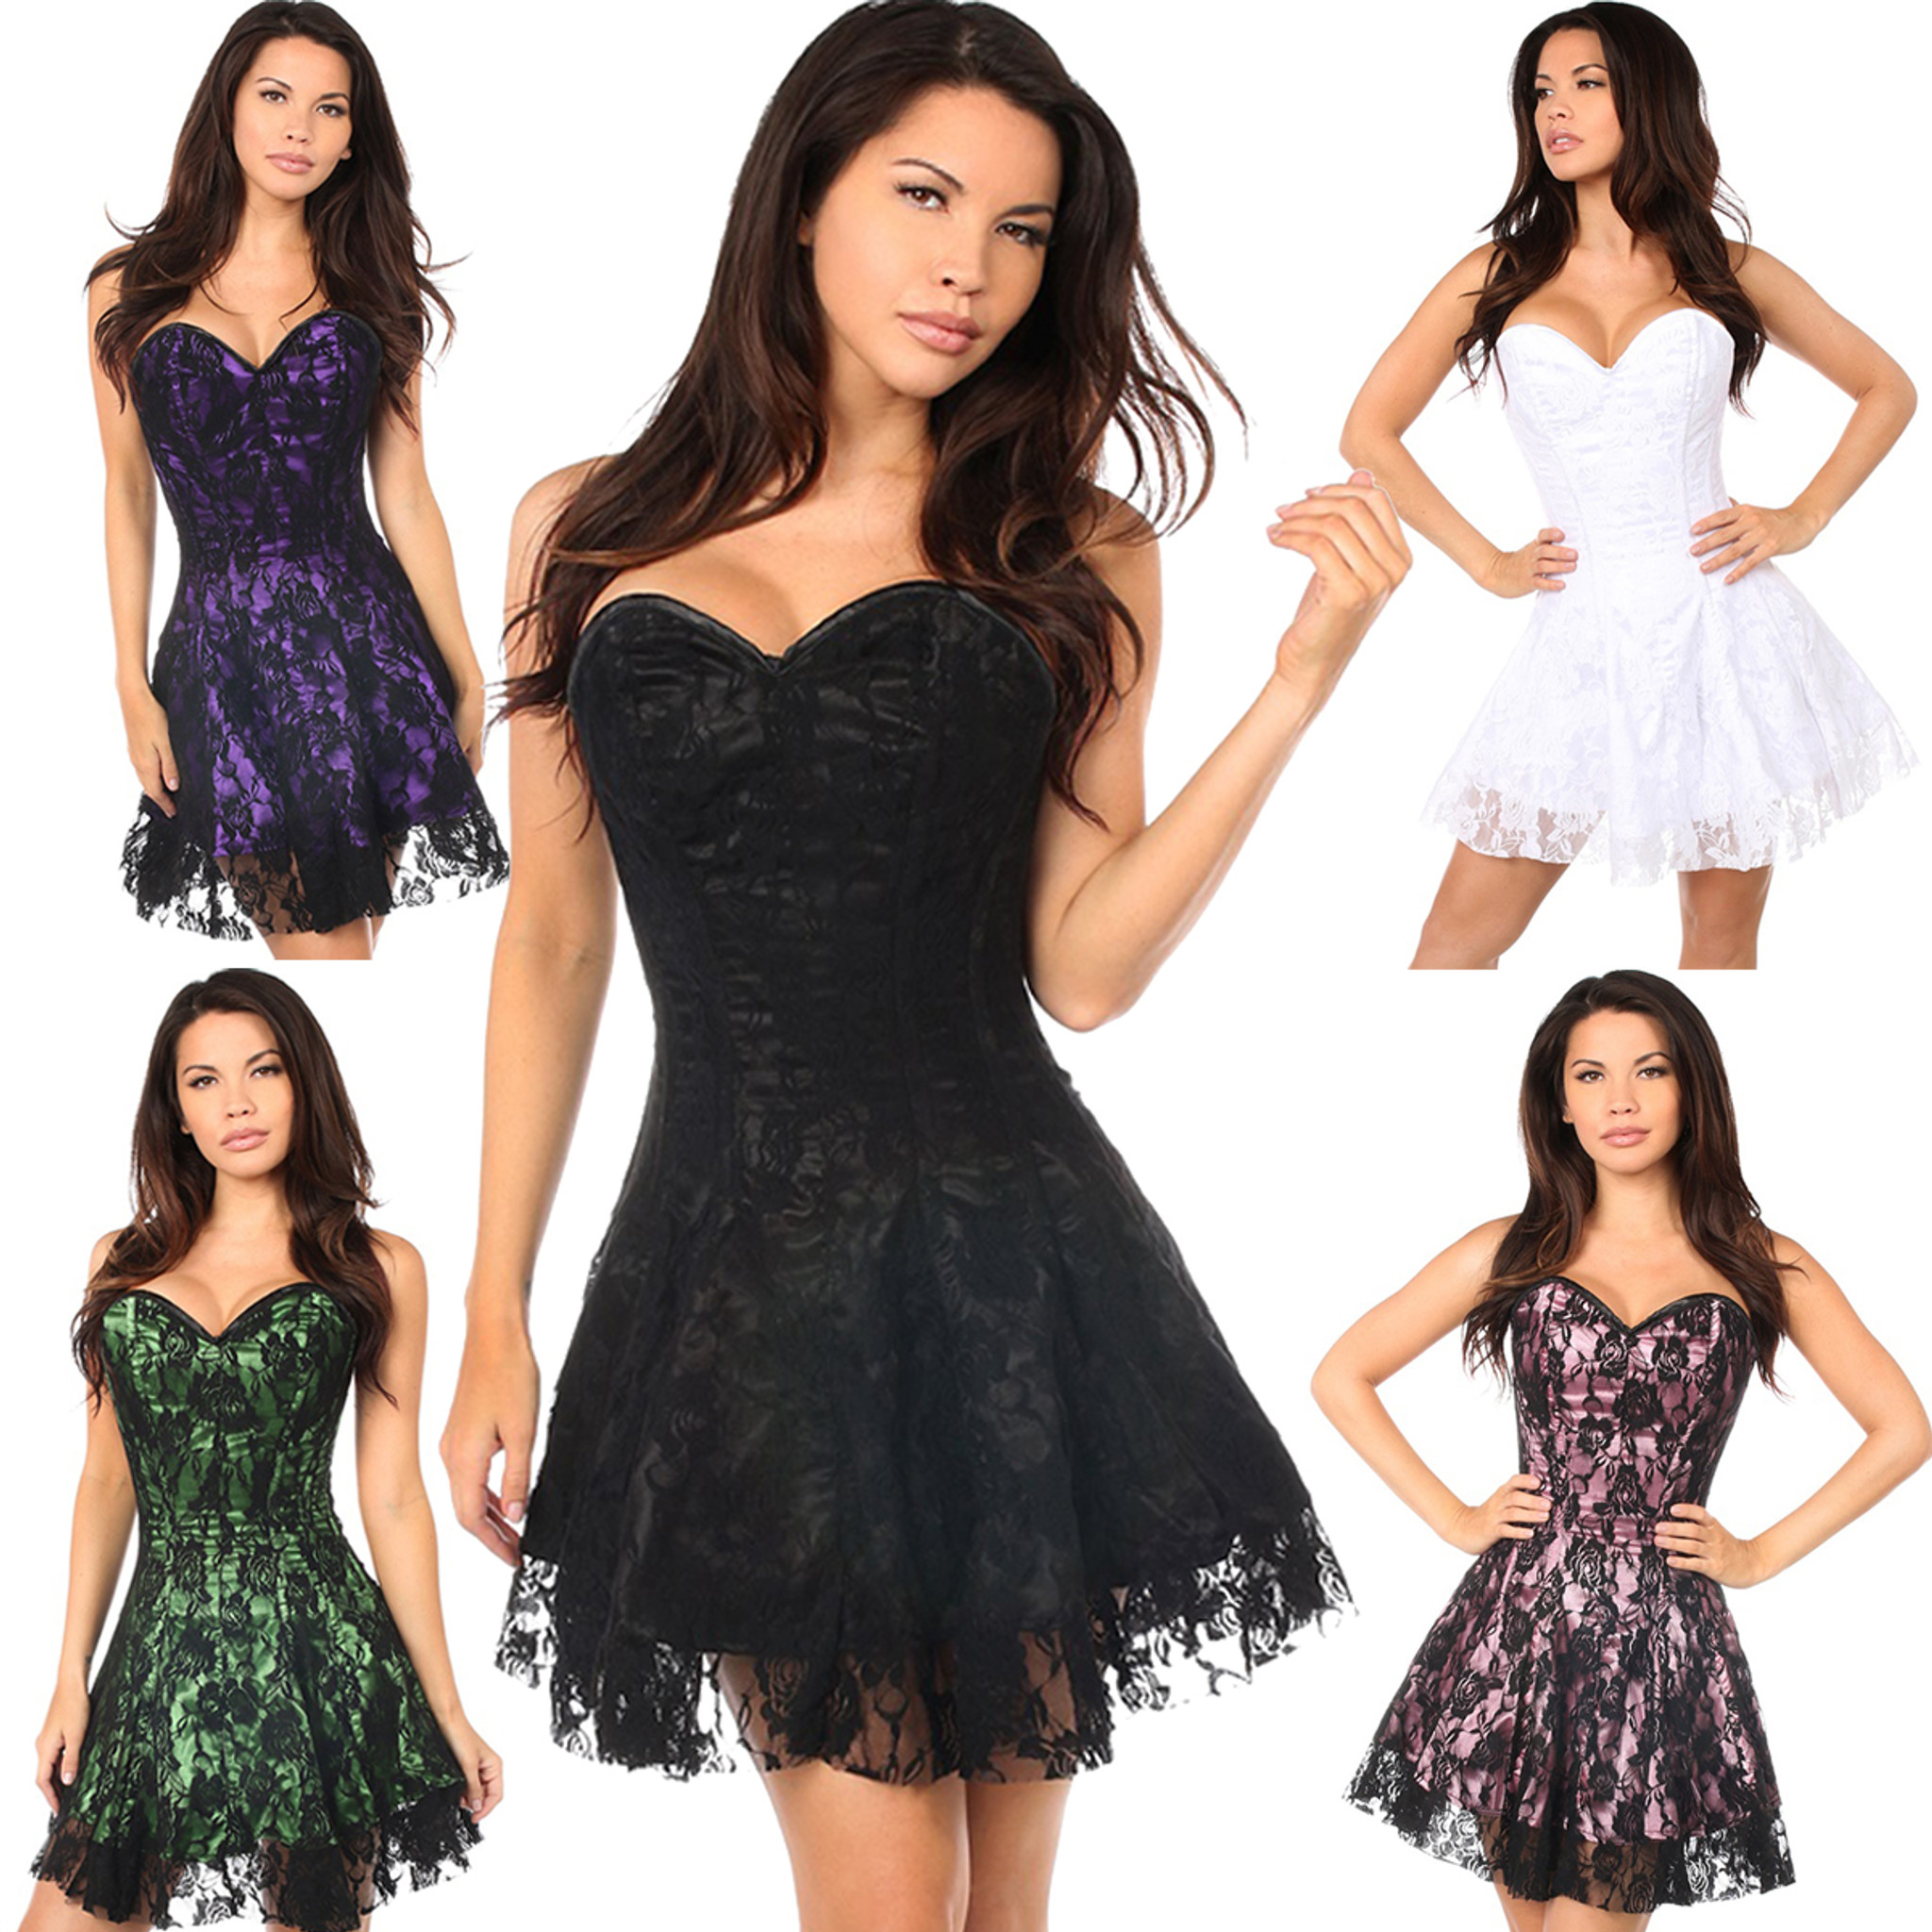 b2dbc7f1b Strapless Corset Dress w Black Lace Overlay - 5 Colors in Sizes S ...